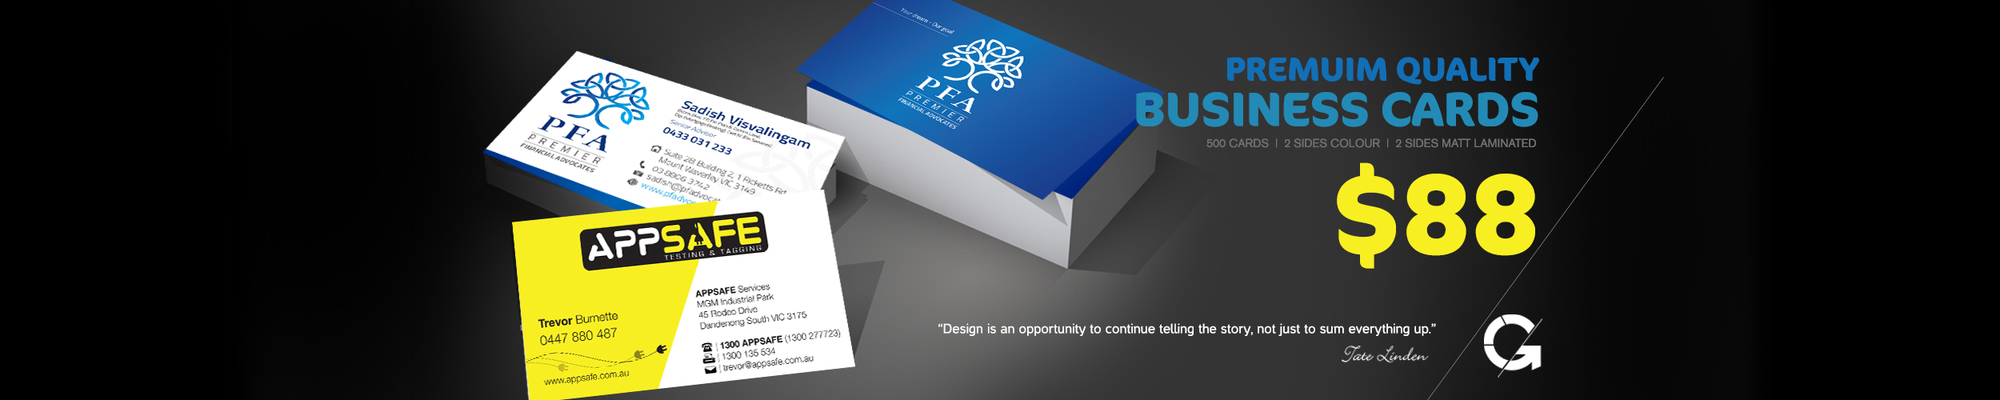 Business cards banner 001